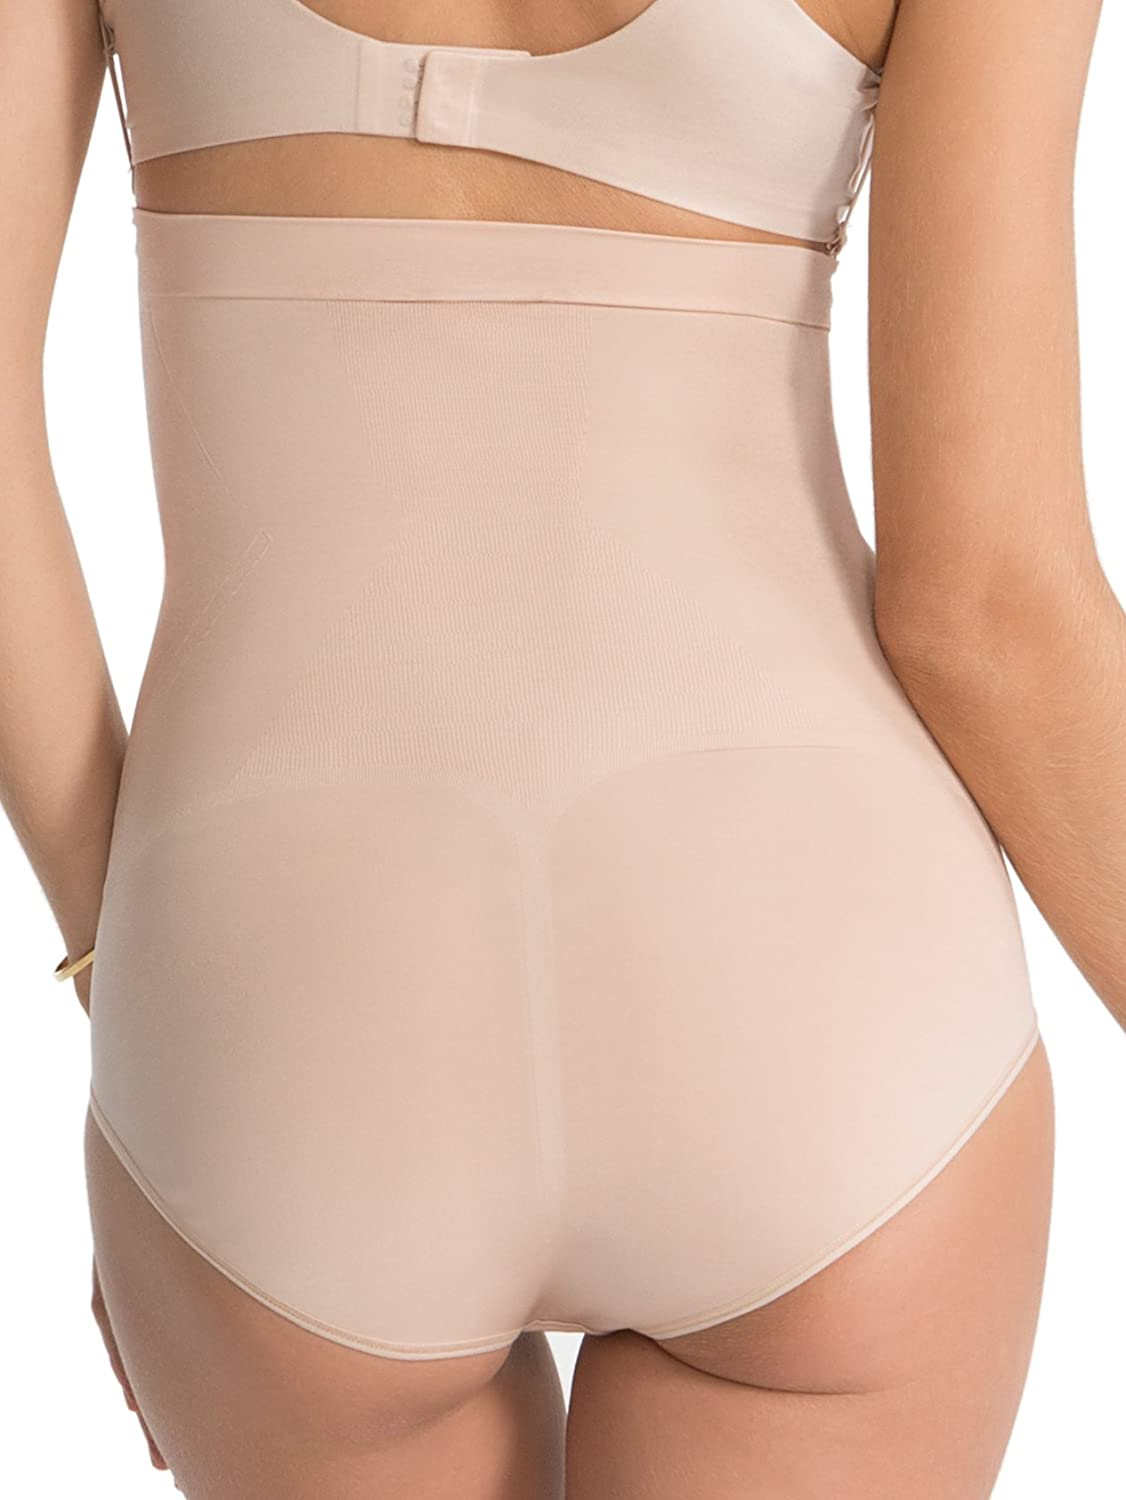 Spanx Slimming Shapewear 'On Core' Sculpt, High Waisted Brief, BYOB, Very Black or Soft Nude